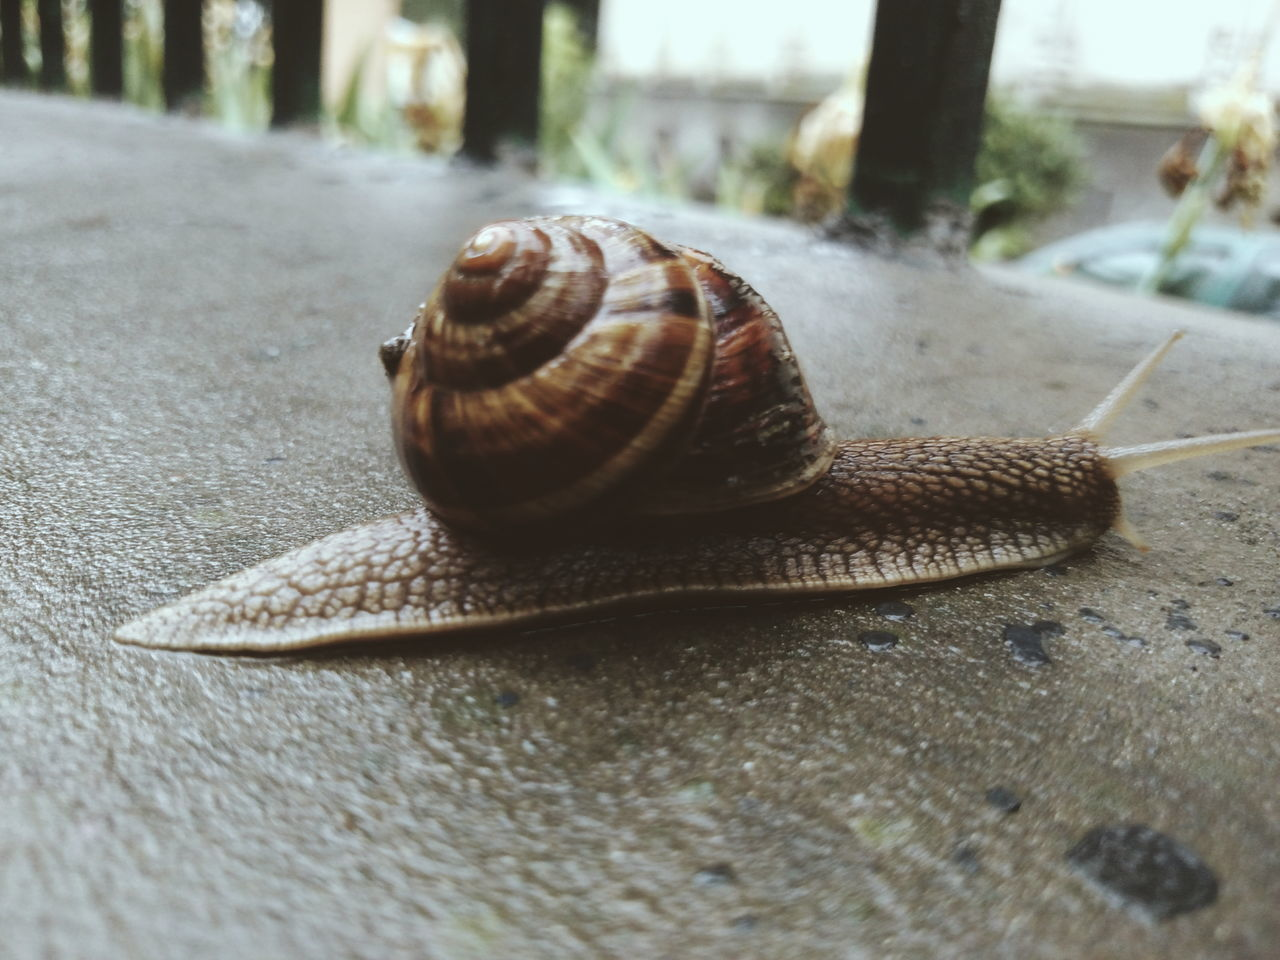 Animal Themes Animals In The Wild Close-up Day Gastropod Molusc Nature One Animal Outdoors Snail Snail🐌